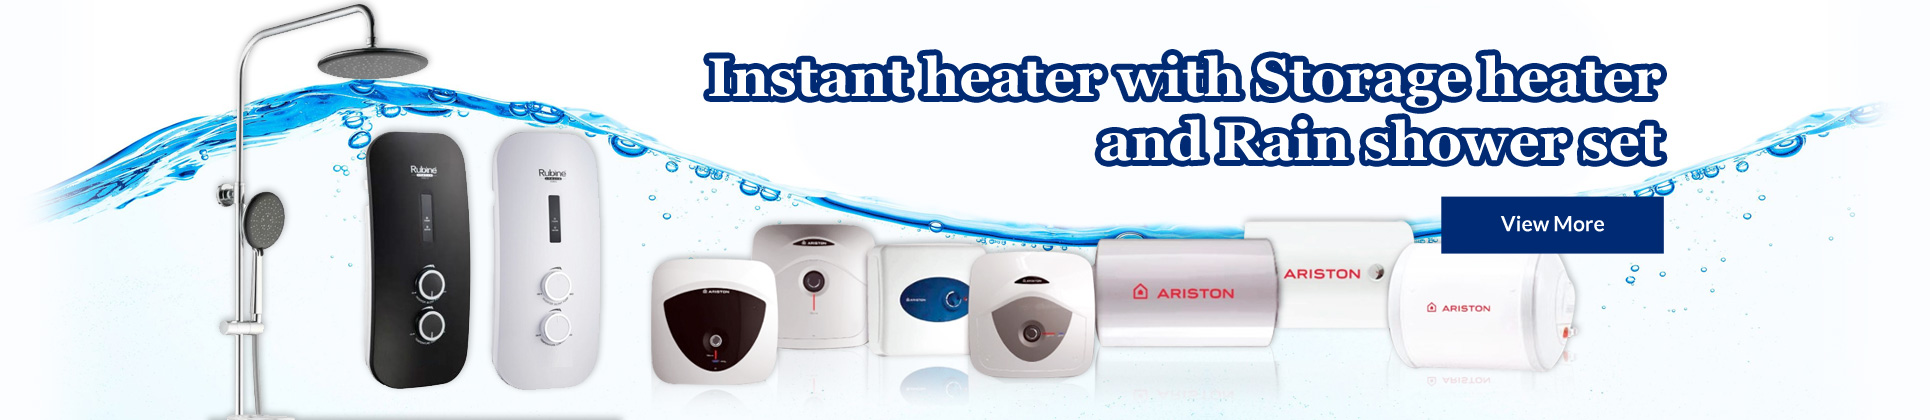 Instant heater with Storage heater and Rain shower set